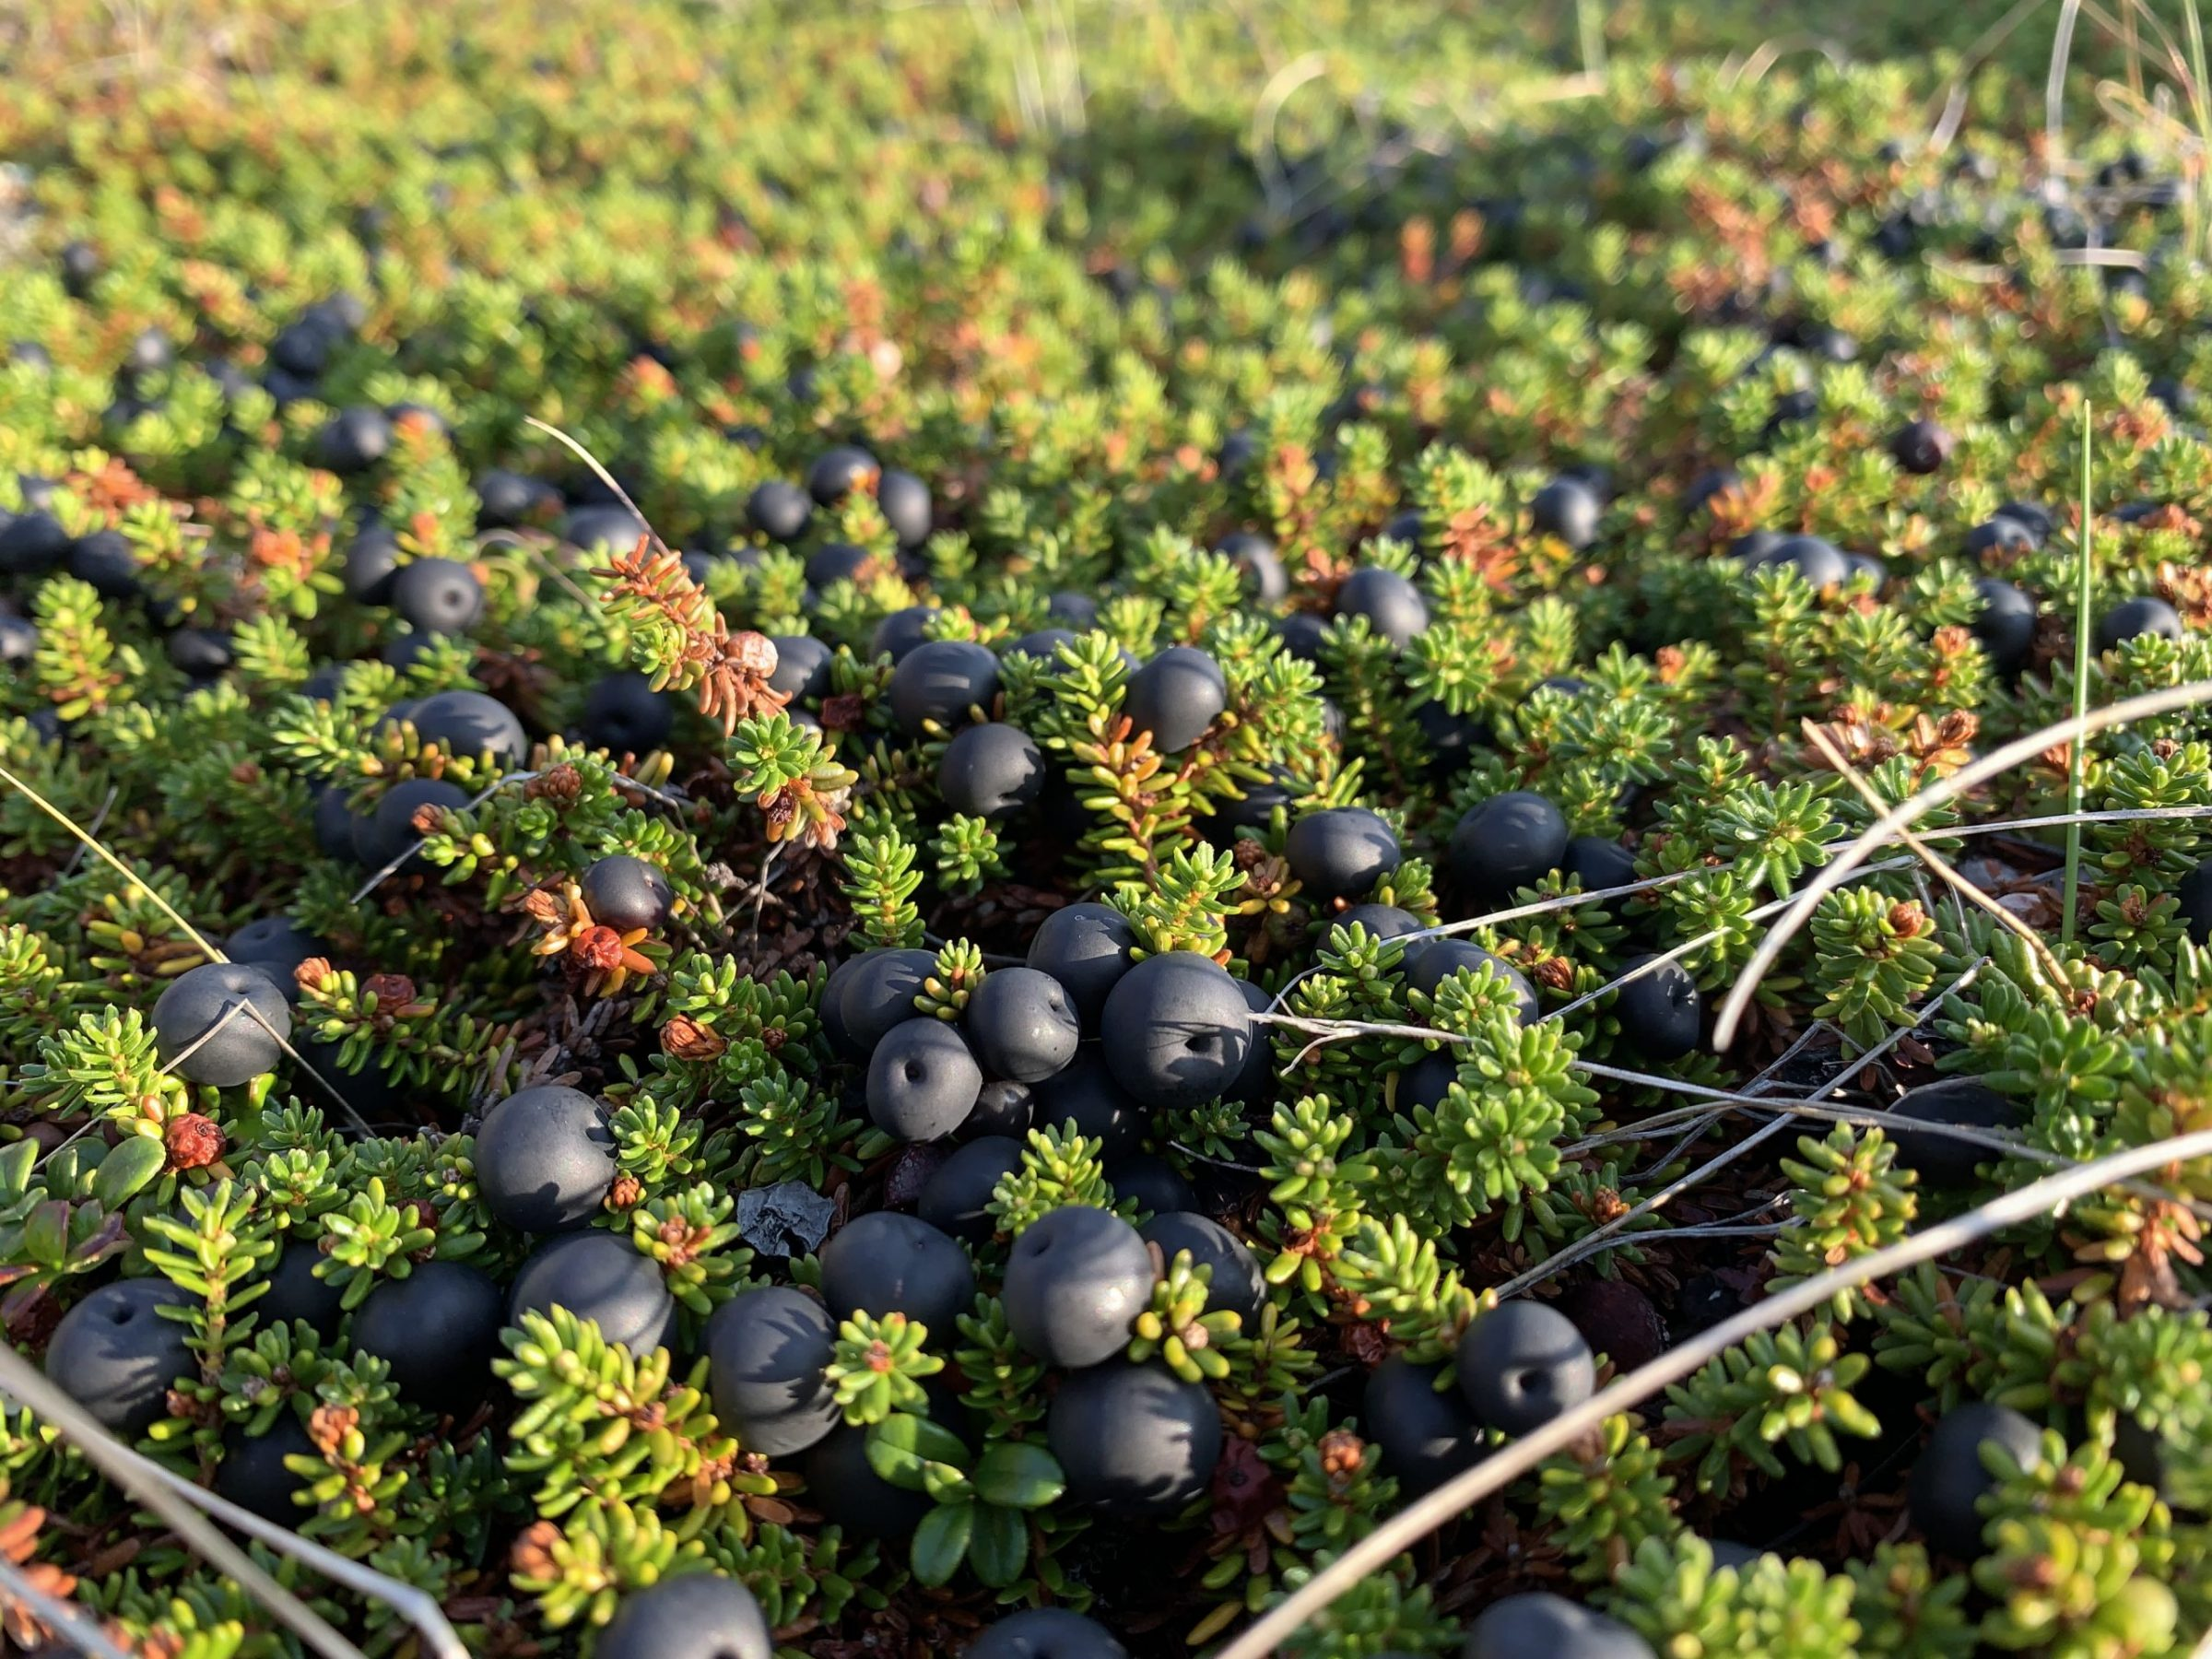 """Malaya Qaunirq Chapman of Kuujjuaq recently visited the Snowball family camp at Tunulik and found a bounty of crowberries, or paurngaq. """"This camp has some of the healthiest patches of berries everywhere!"""" she writes. (Photo by Malaya Qaunirq Chapman)"""